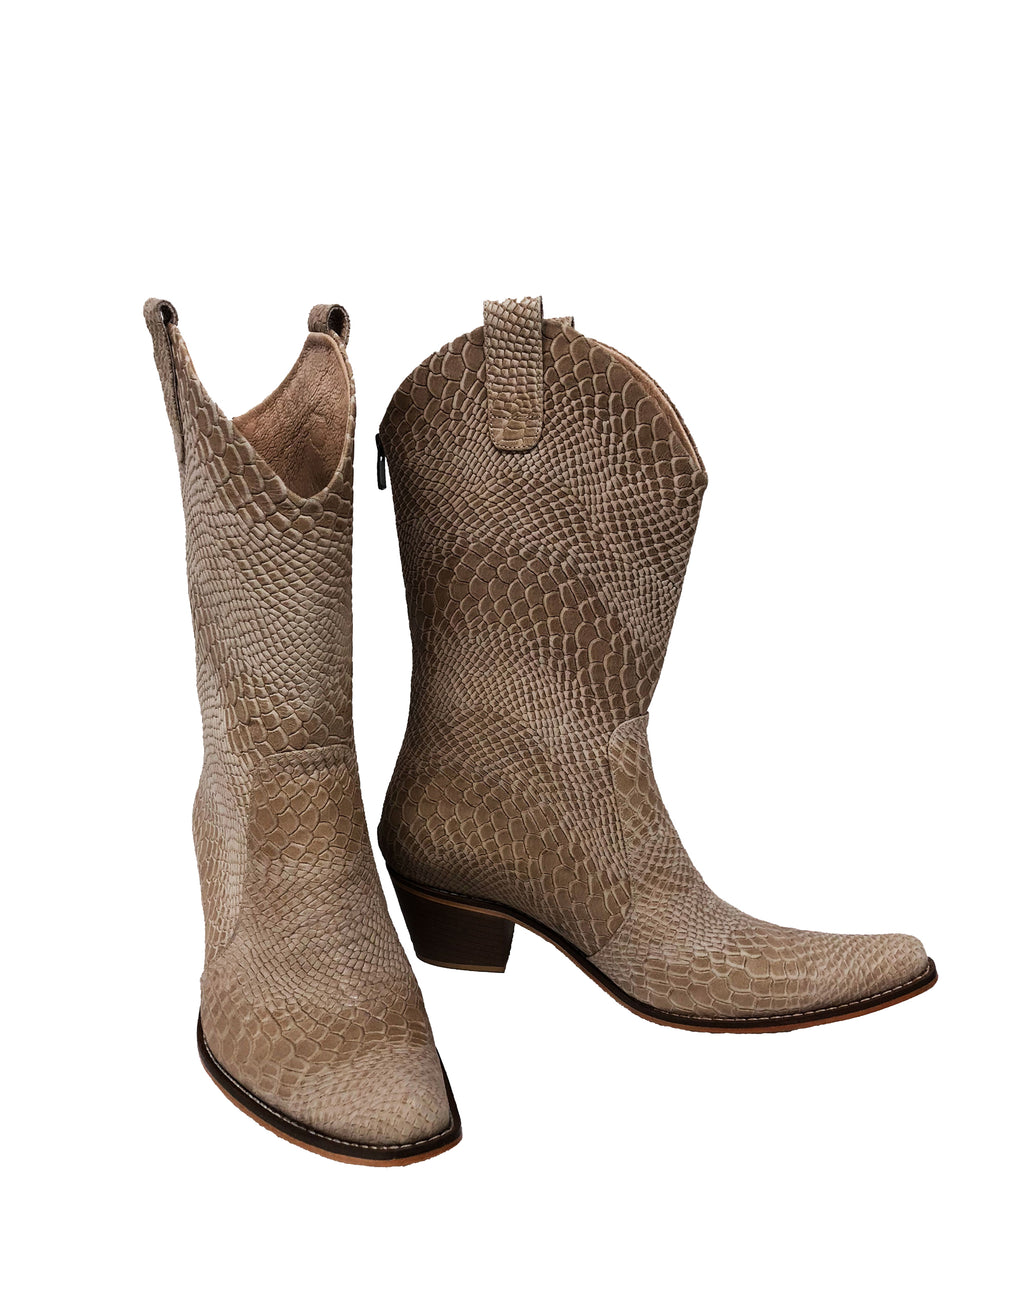 Nude Python Leather - Pull On Cowboys